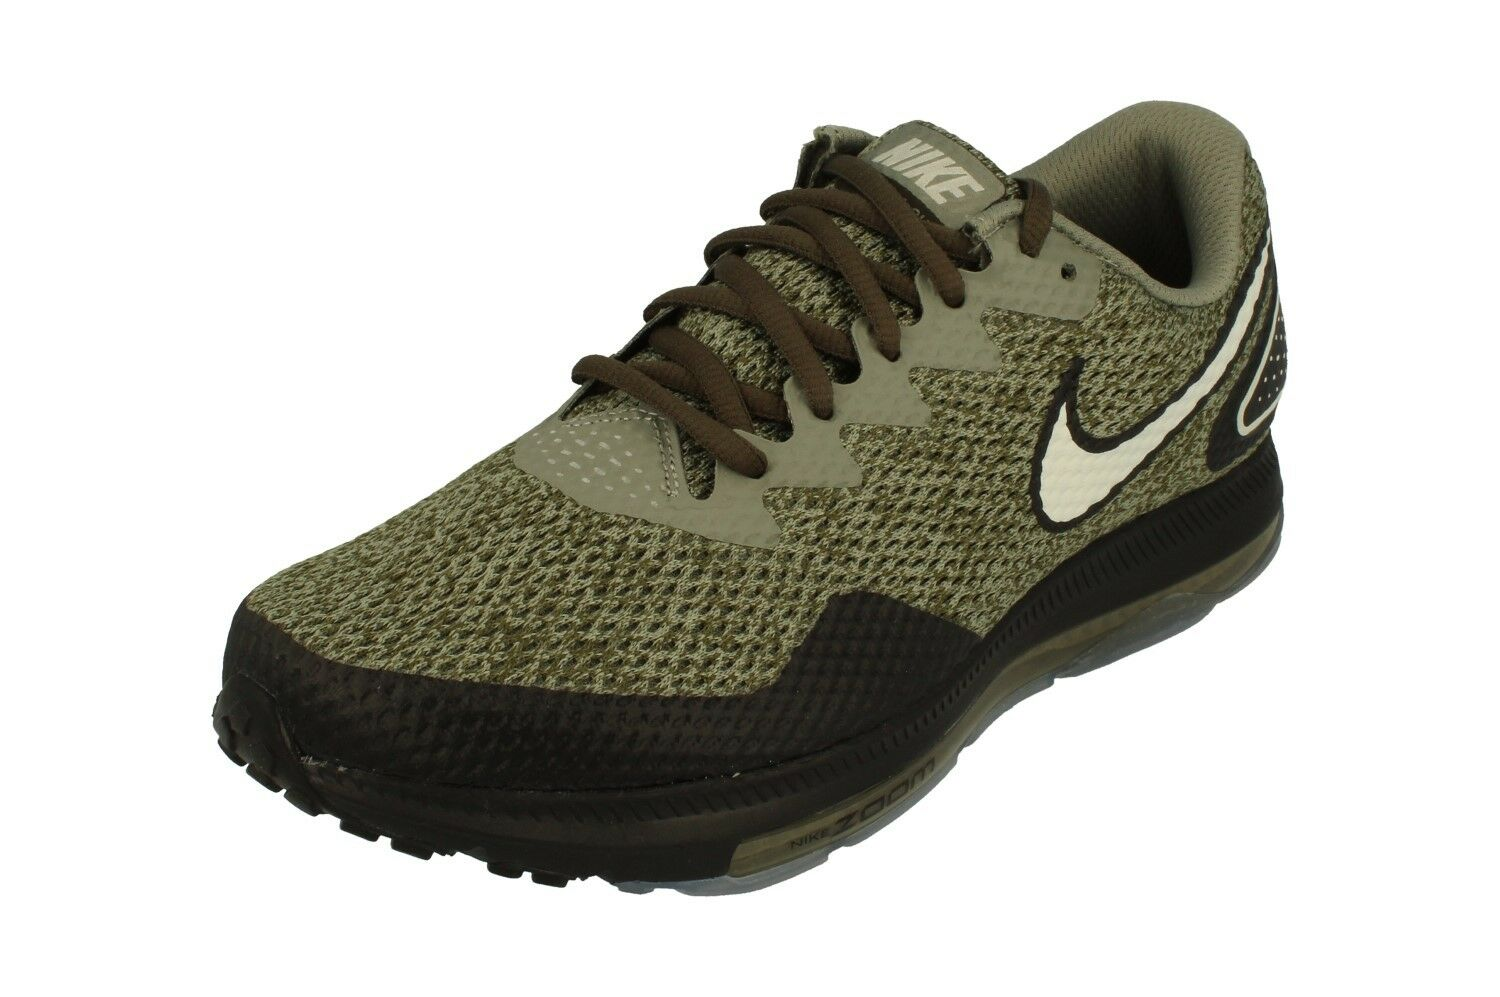 separation shoes a6936 b9560 Nike Zoom Zoom Zoom All Out faible 2 Homme Running Baskets Aj0035 Baskets  Chaussures 300 a2061f